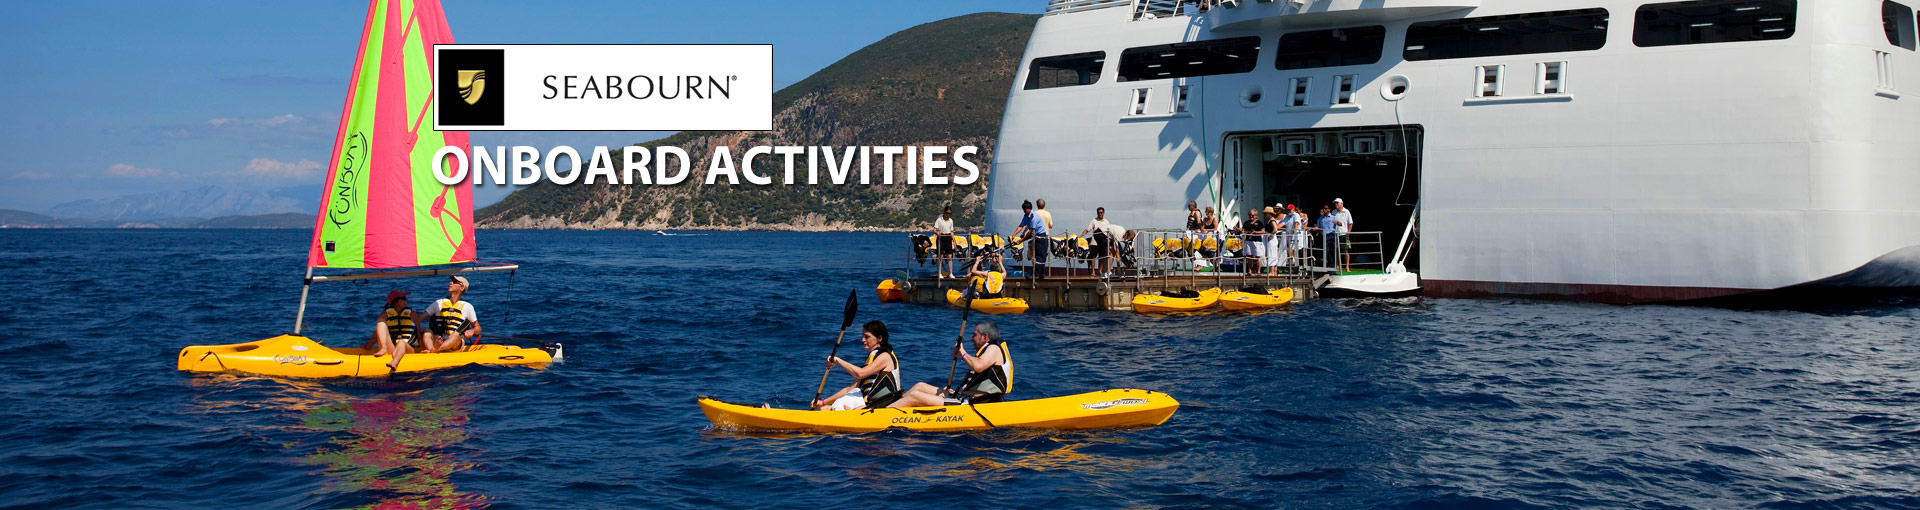 Seabourn Cruise Line Onboard Activities